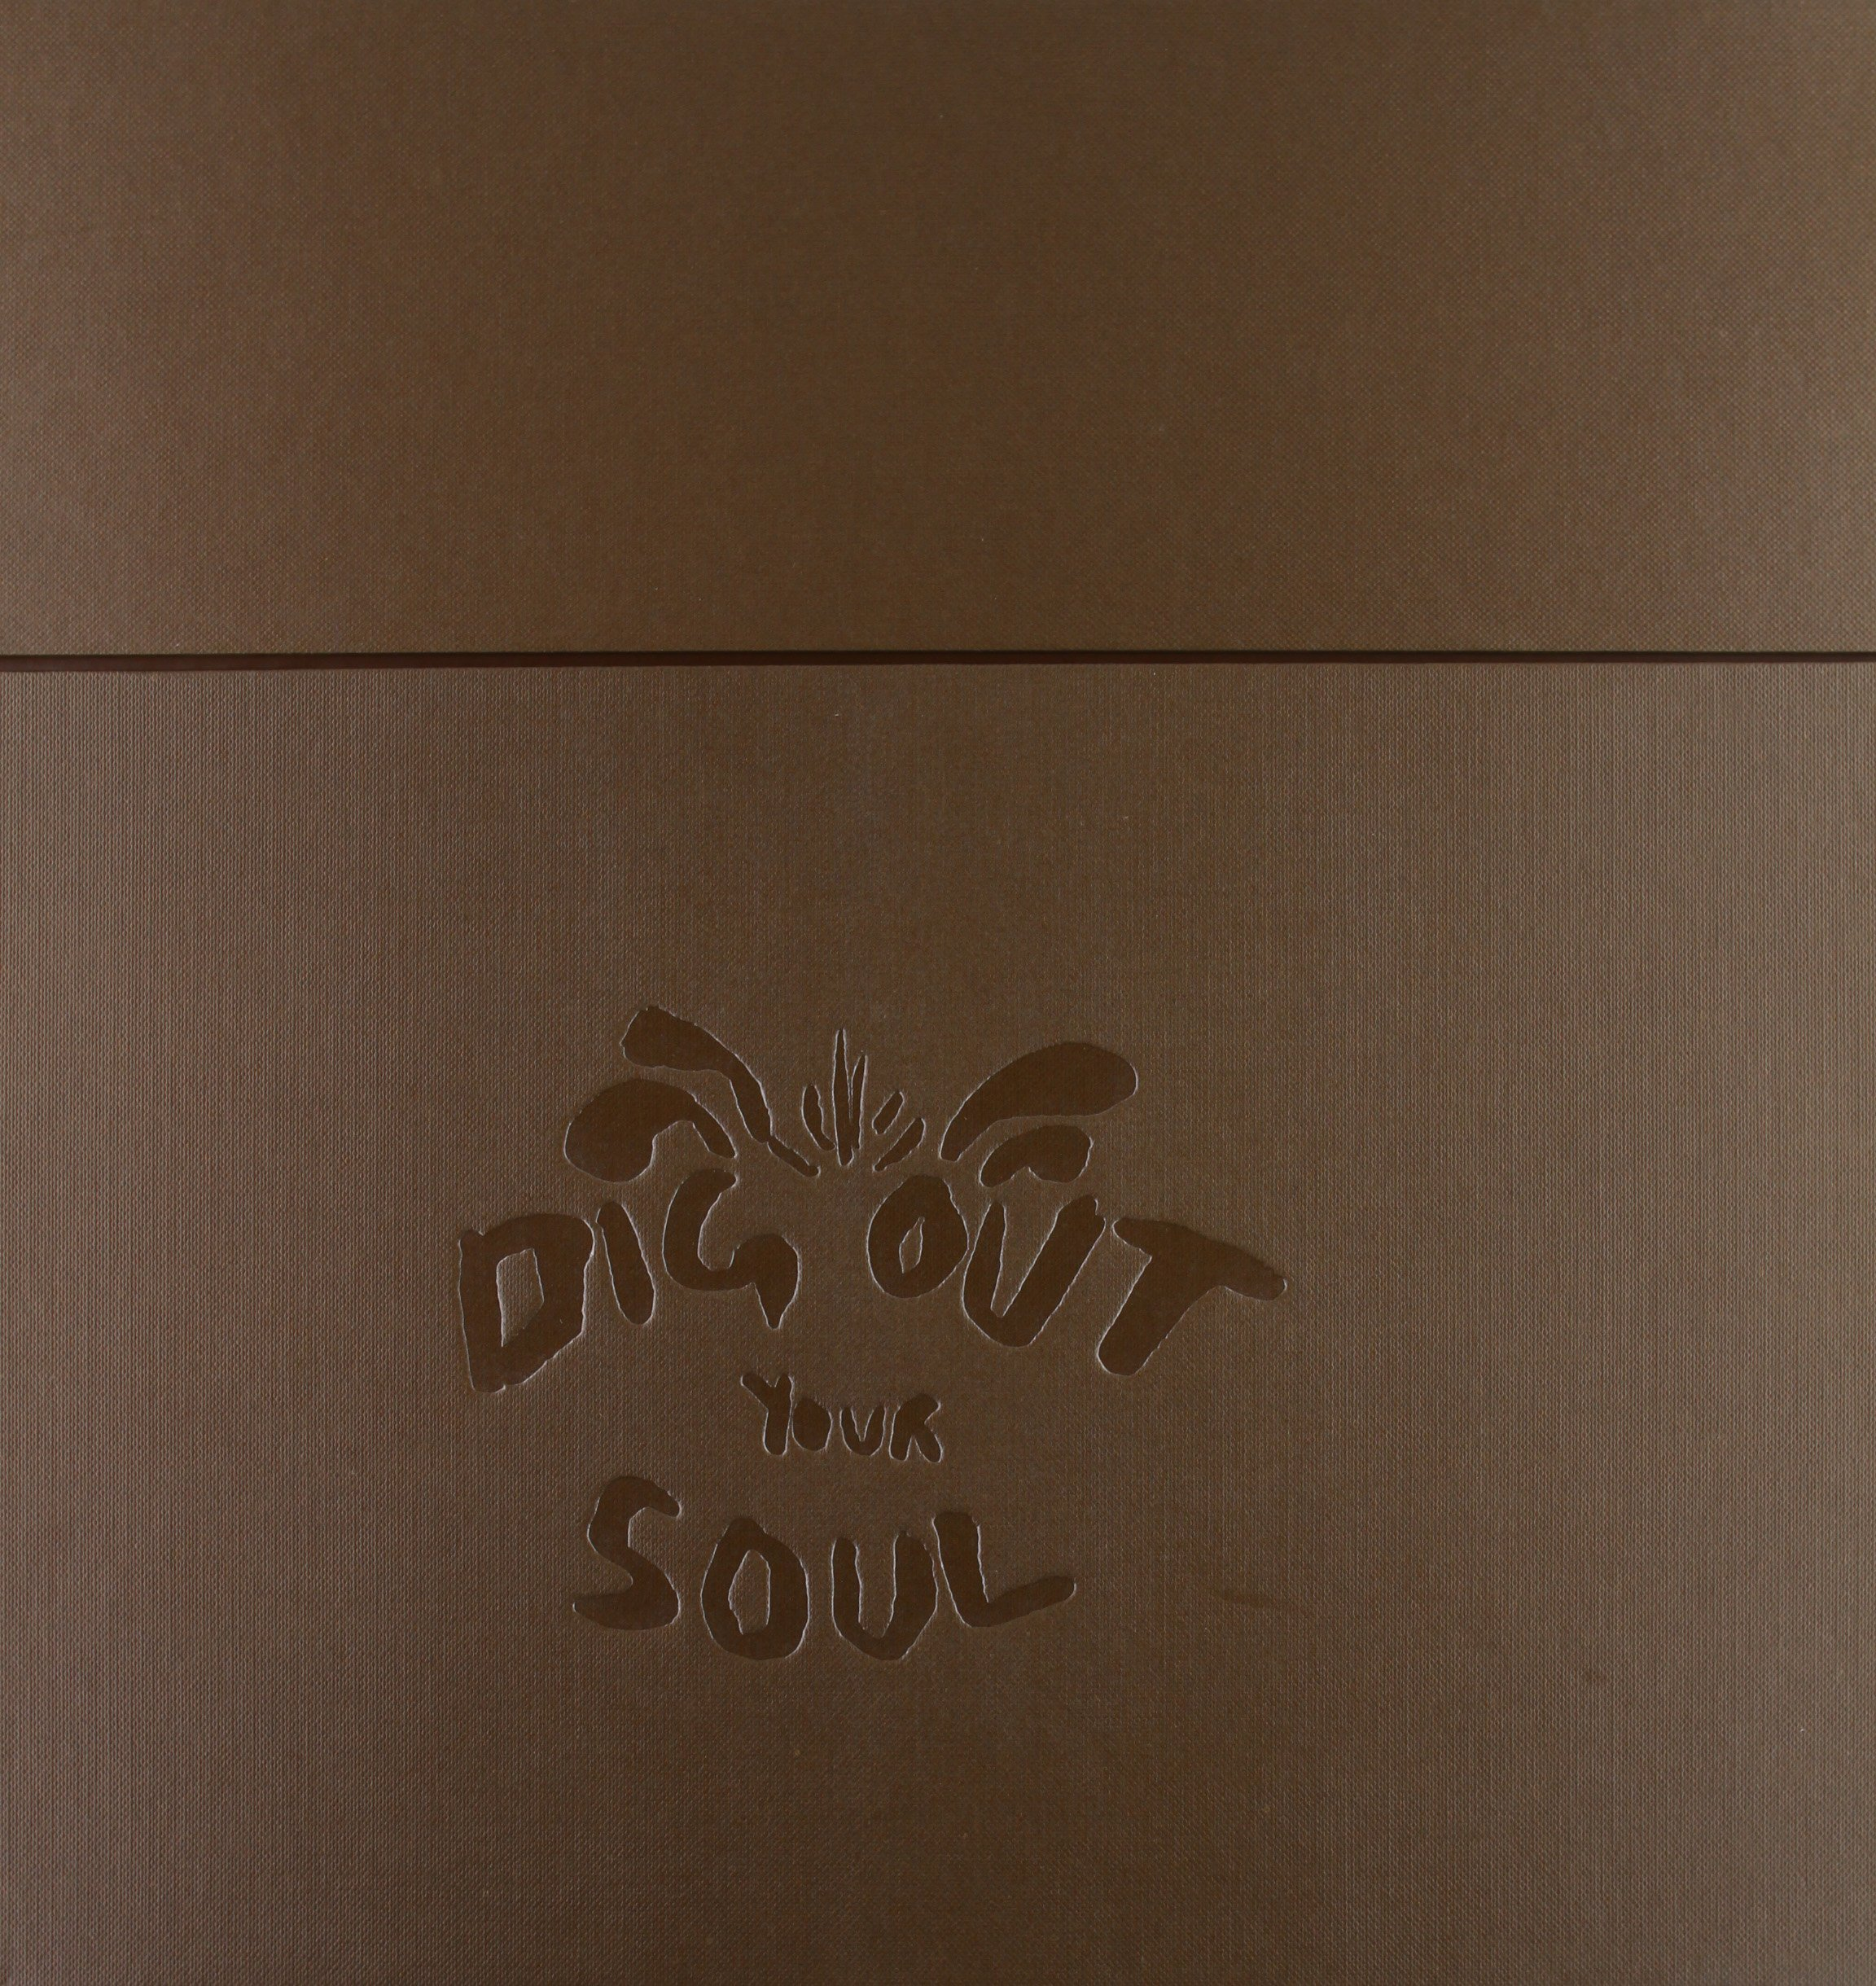 Dig Out Your Soul - Oasis CD